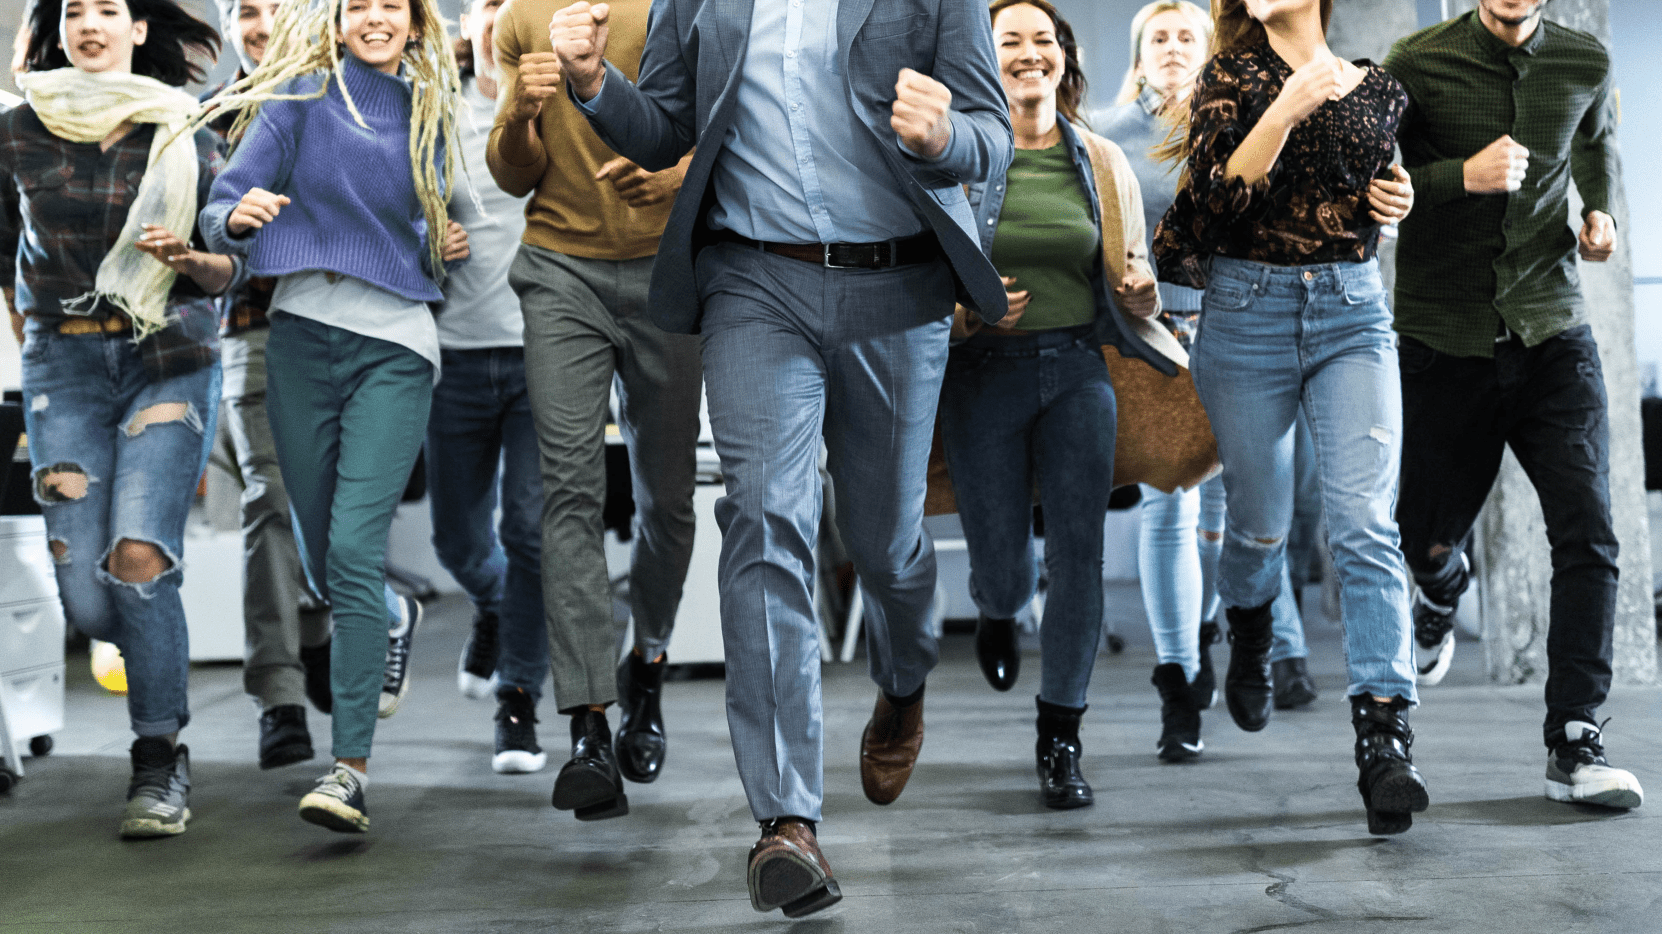 a group of people run towards the camera wearing business and smart casual clothes.